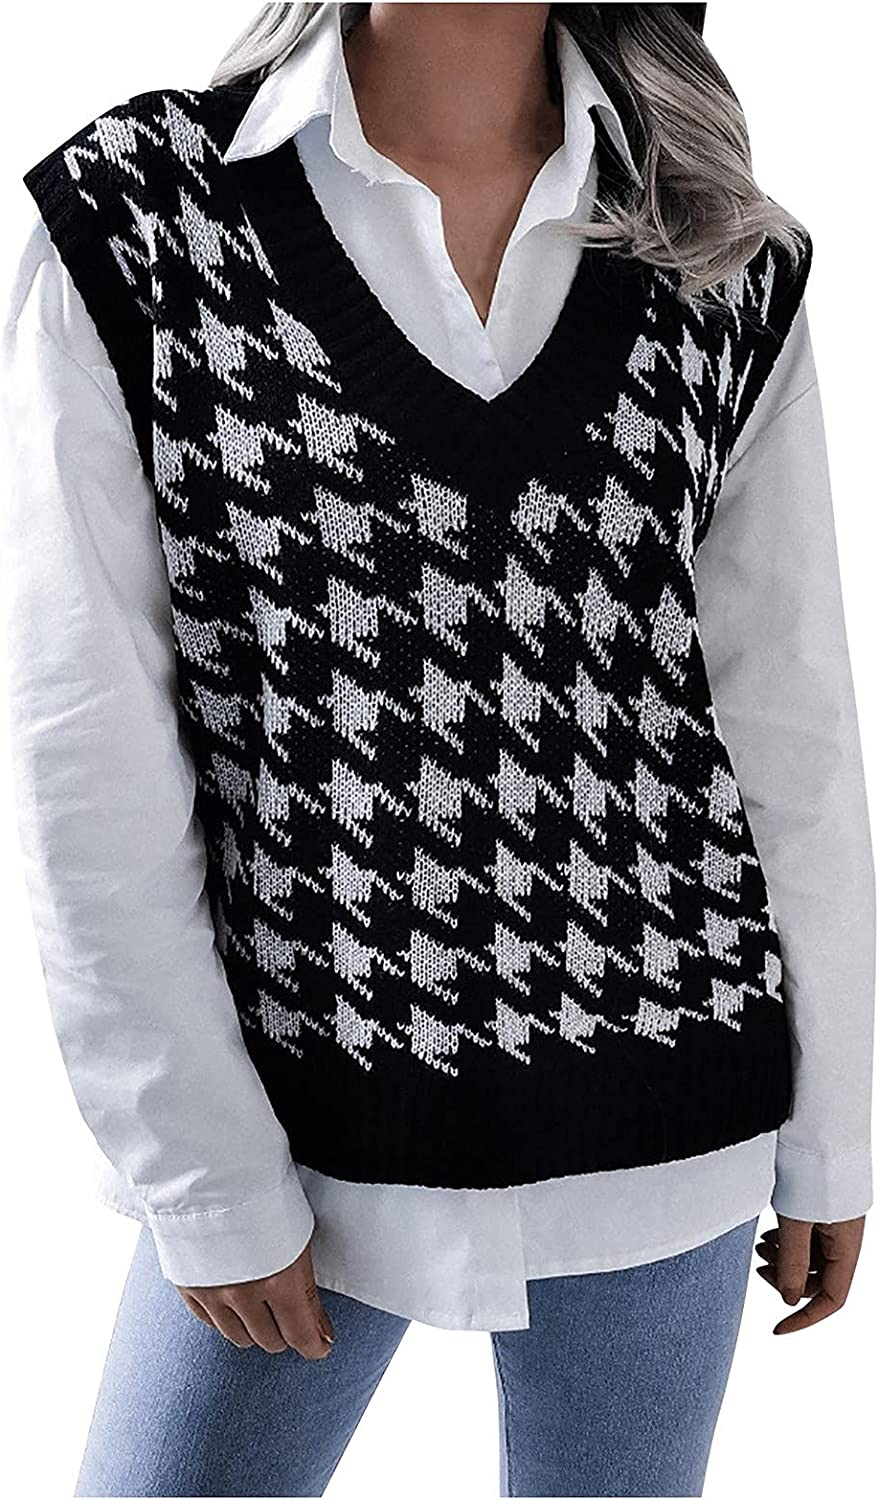 Sweater Vest Women College Style Houndstooth Print Casual Loose Knit V-Neck Hollow Sweaters Tops